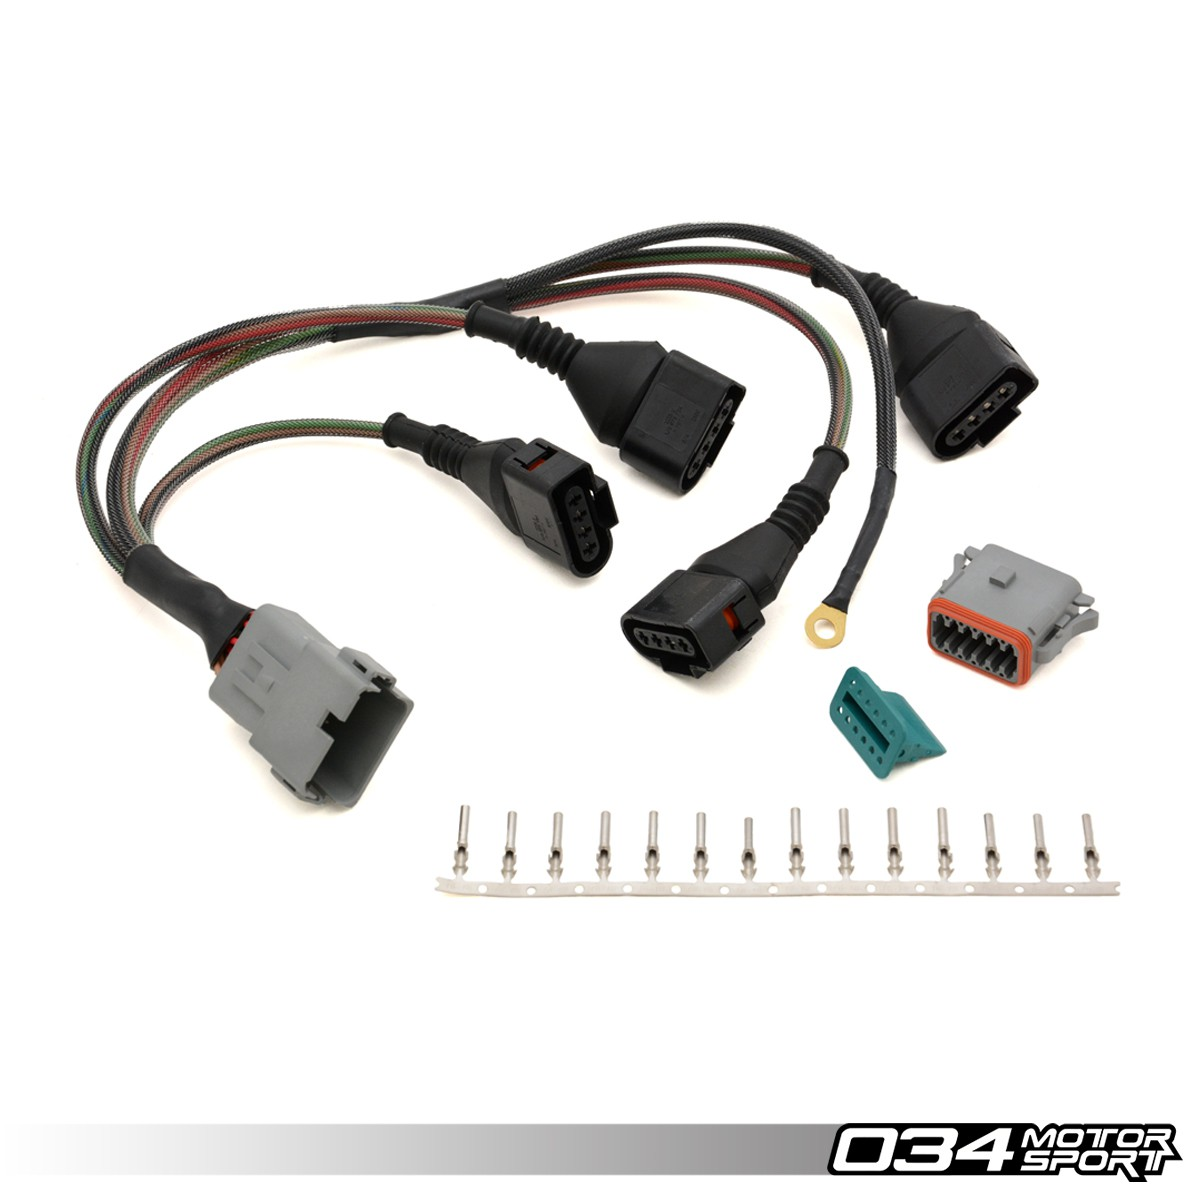 repair update harness audi volkswagen 1 8t with 4 wire coils 034 rh store 034motorsport com audi wiring harness repair kit wiring harness repair kit 2000 dodge stratus